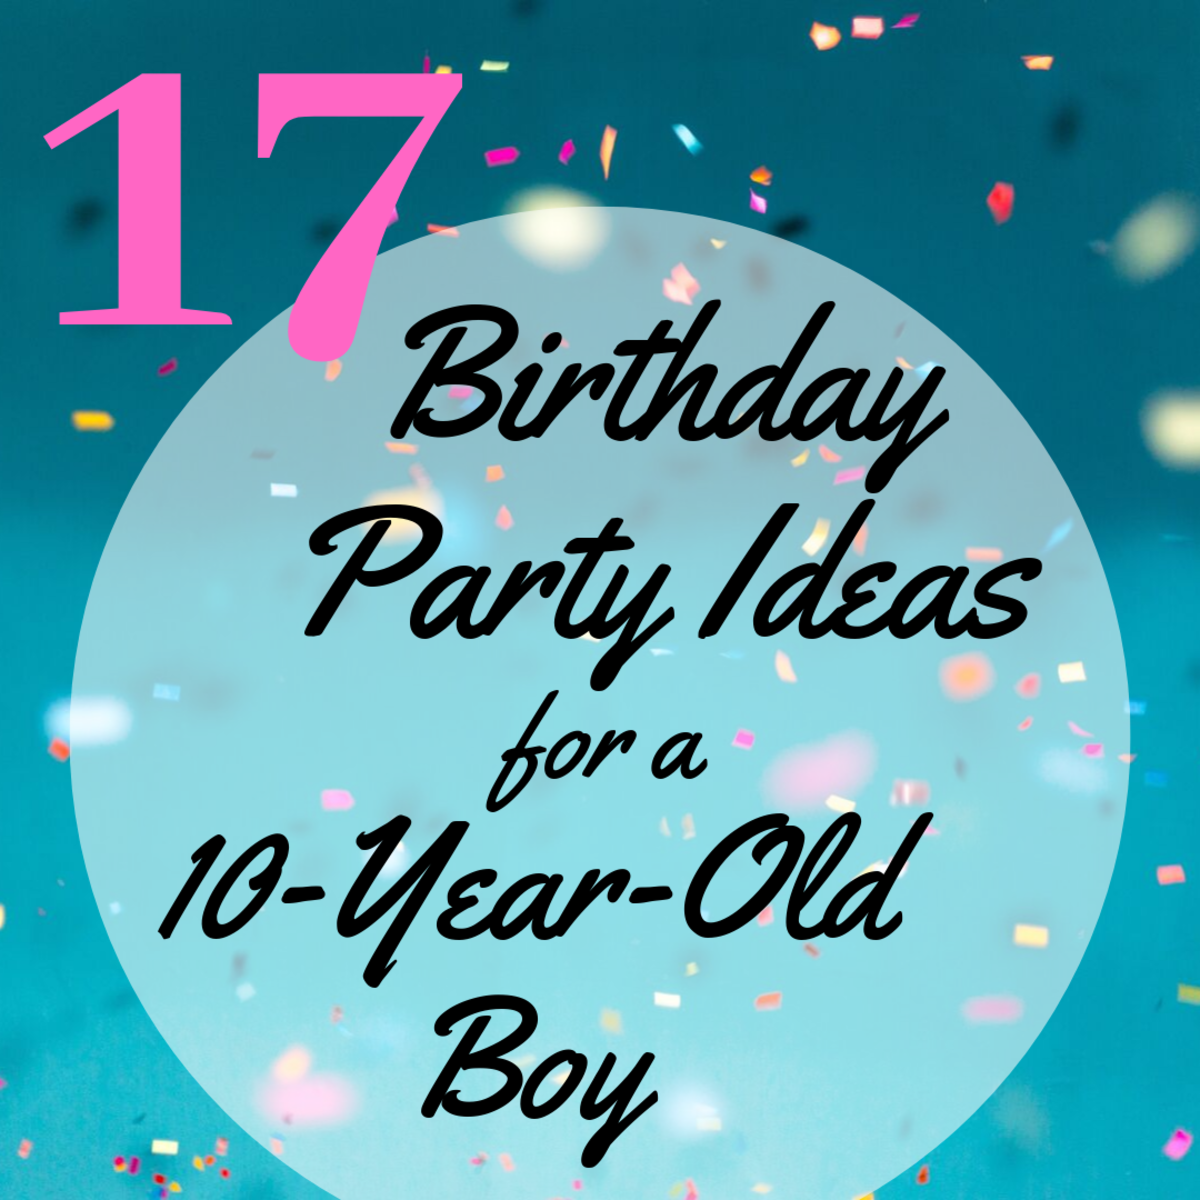 Happy Home Designer Tips: 17 Birthday Party Ideas For A 10-Year-Old Boy